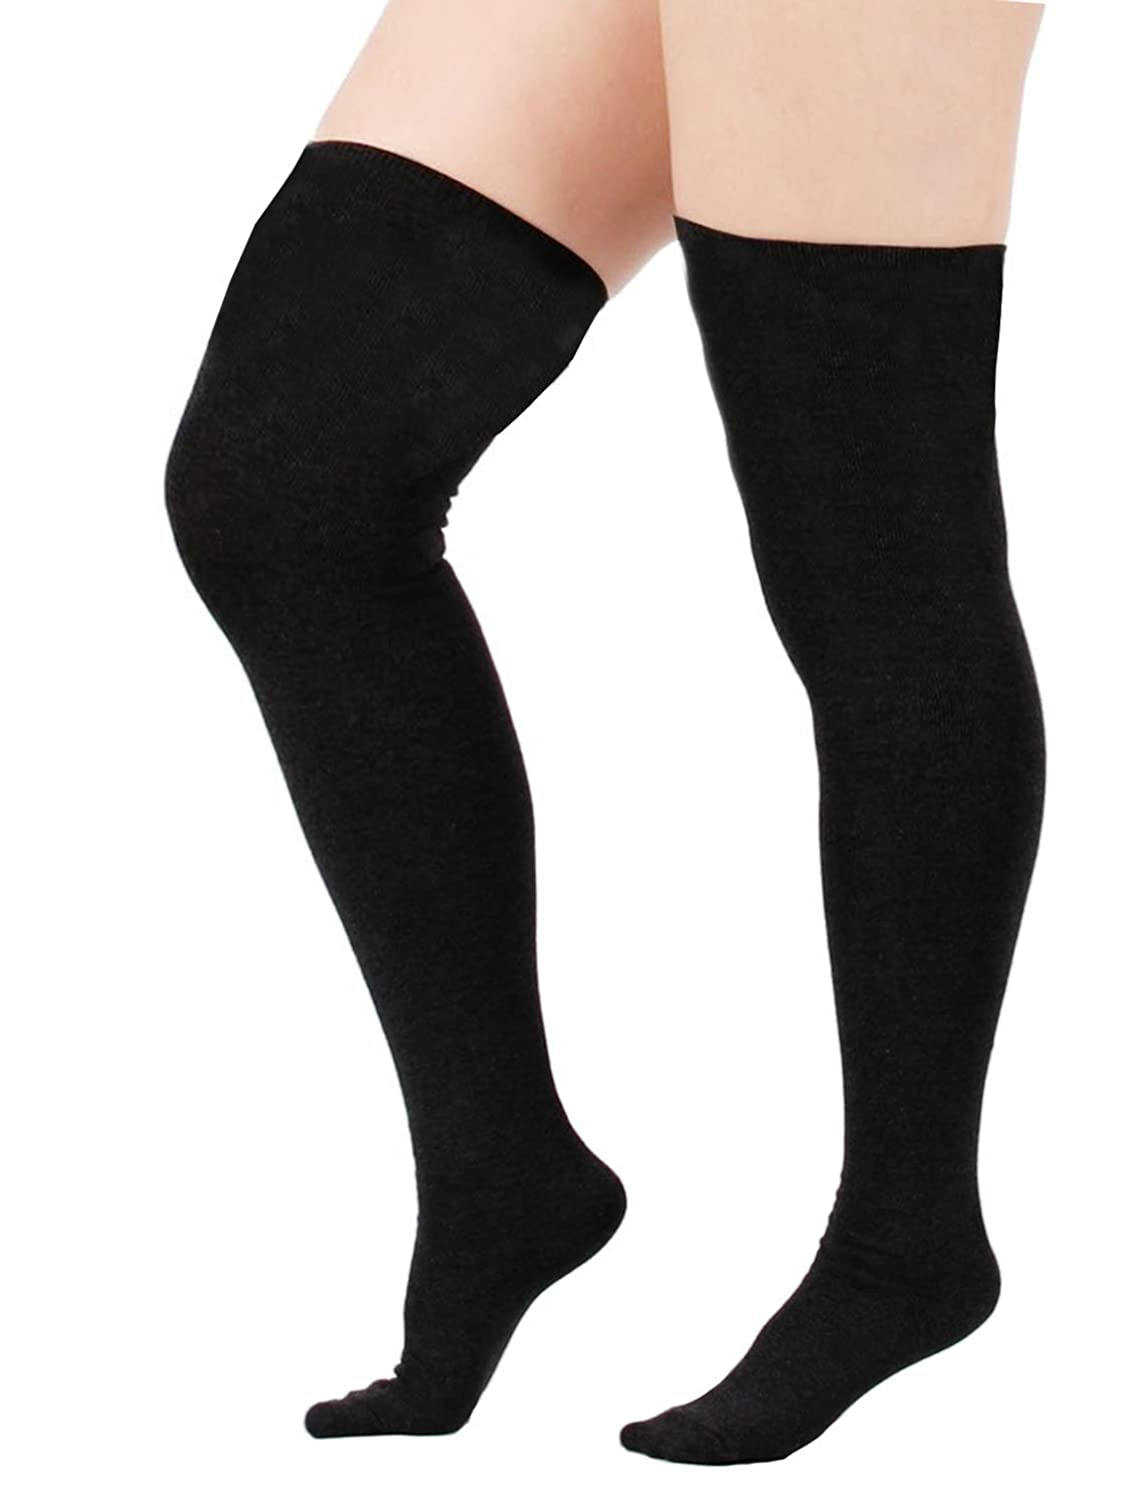 Women Kawaii Stretchy Thigh High Stockings Long Tight Plus Size Over Knee Triple Stripes Tube Socks 1-3 Pairs 2 Pairs Goth Black at Amazon Womens Clothing ...